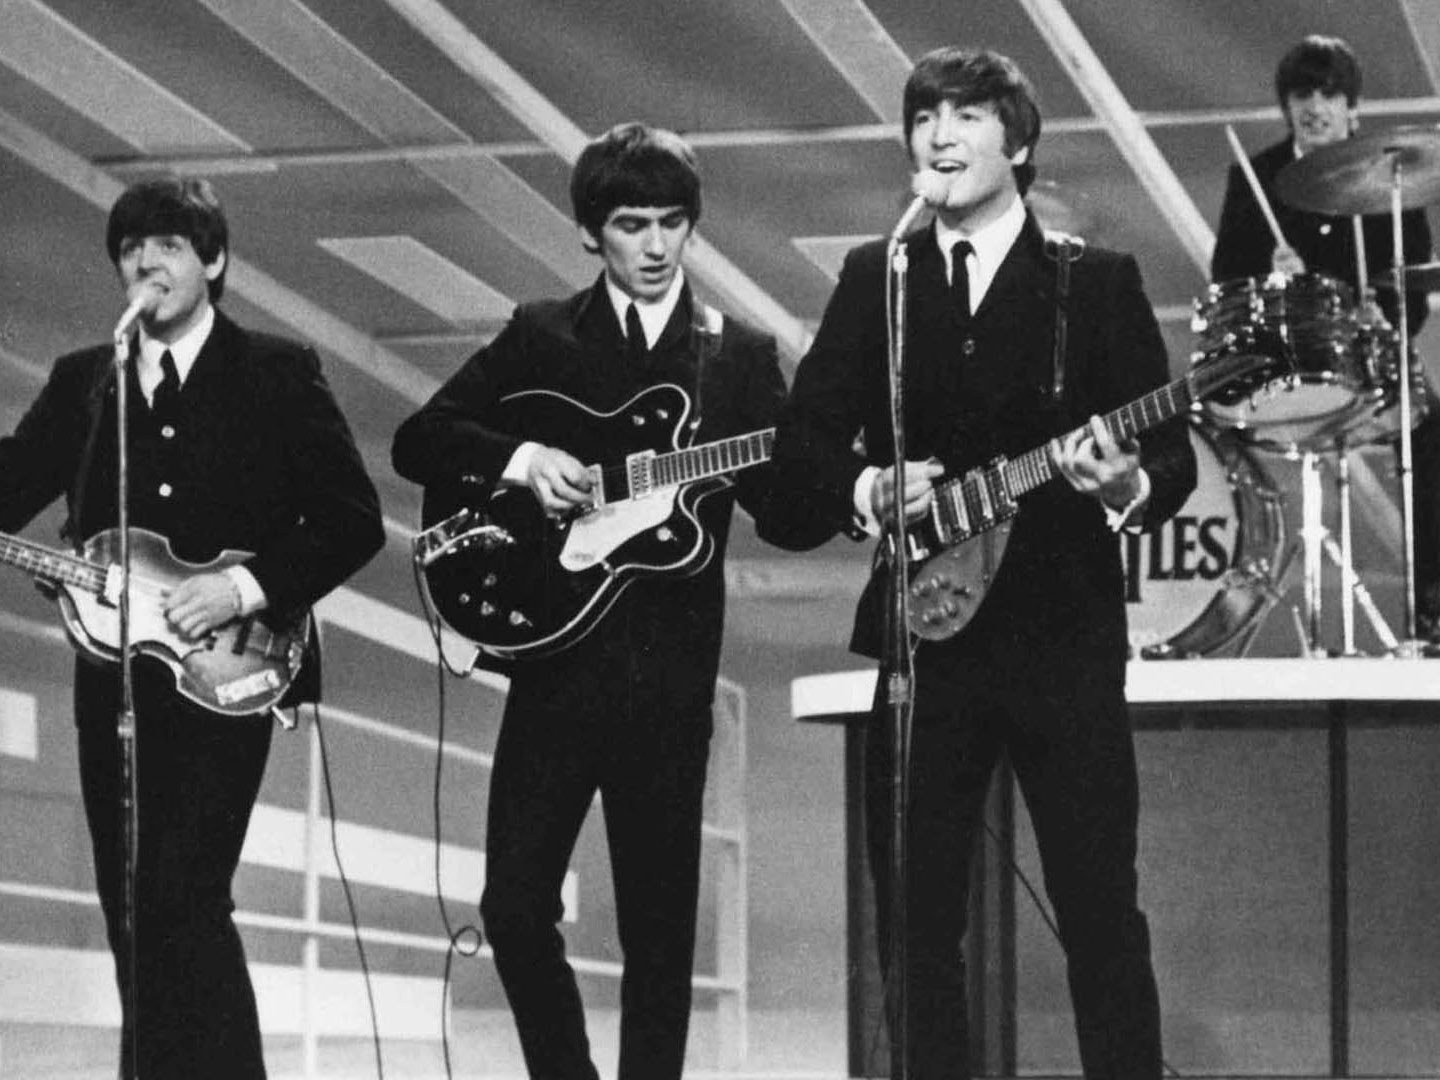 The Beatles live at the Ed Sullivan Show